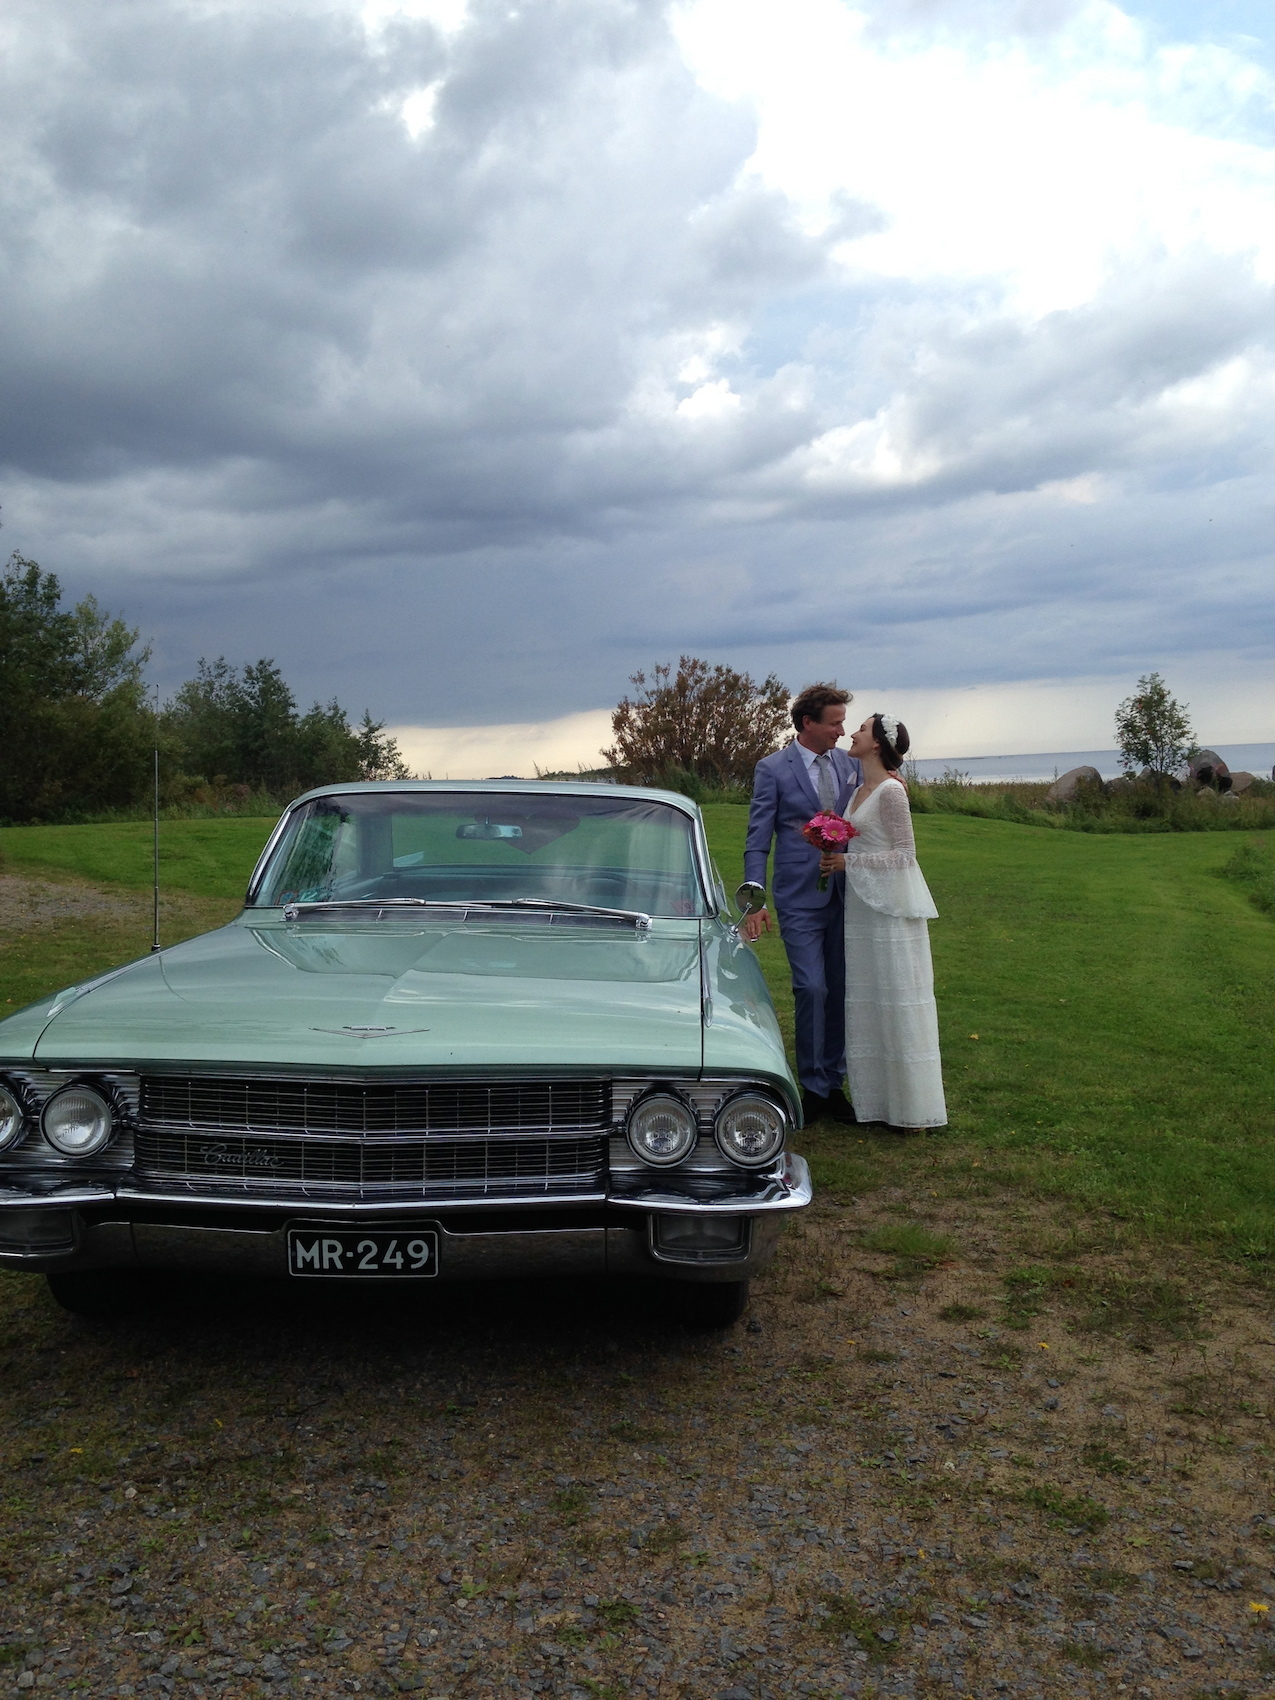 cadillac and the wedding couple